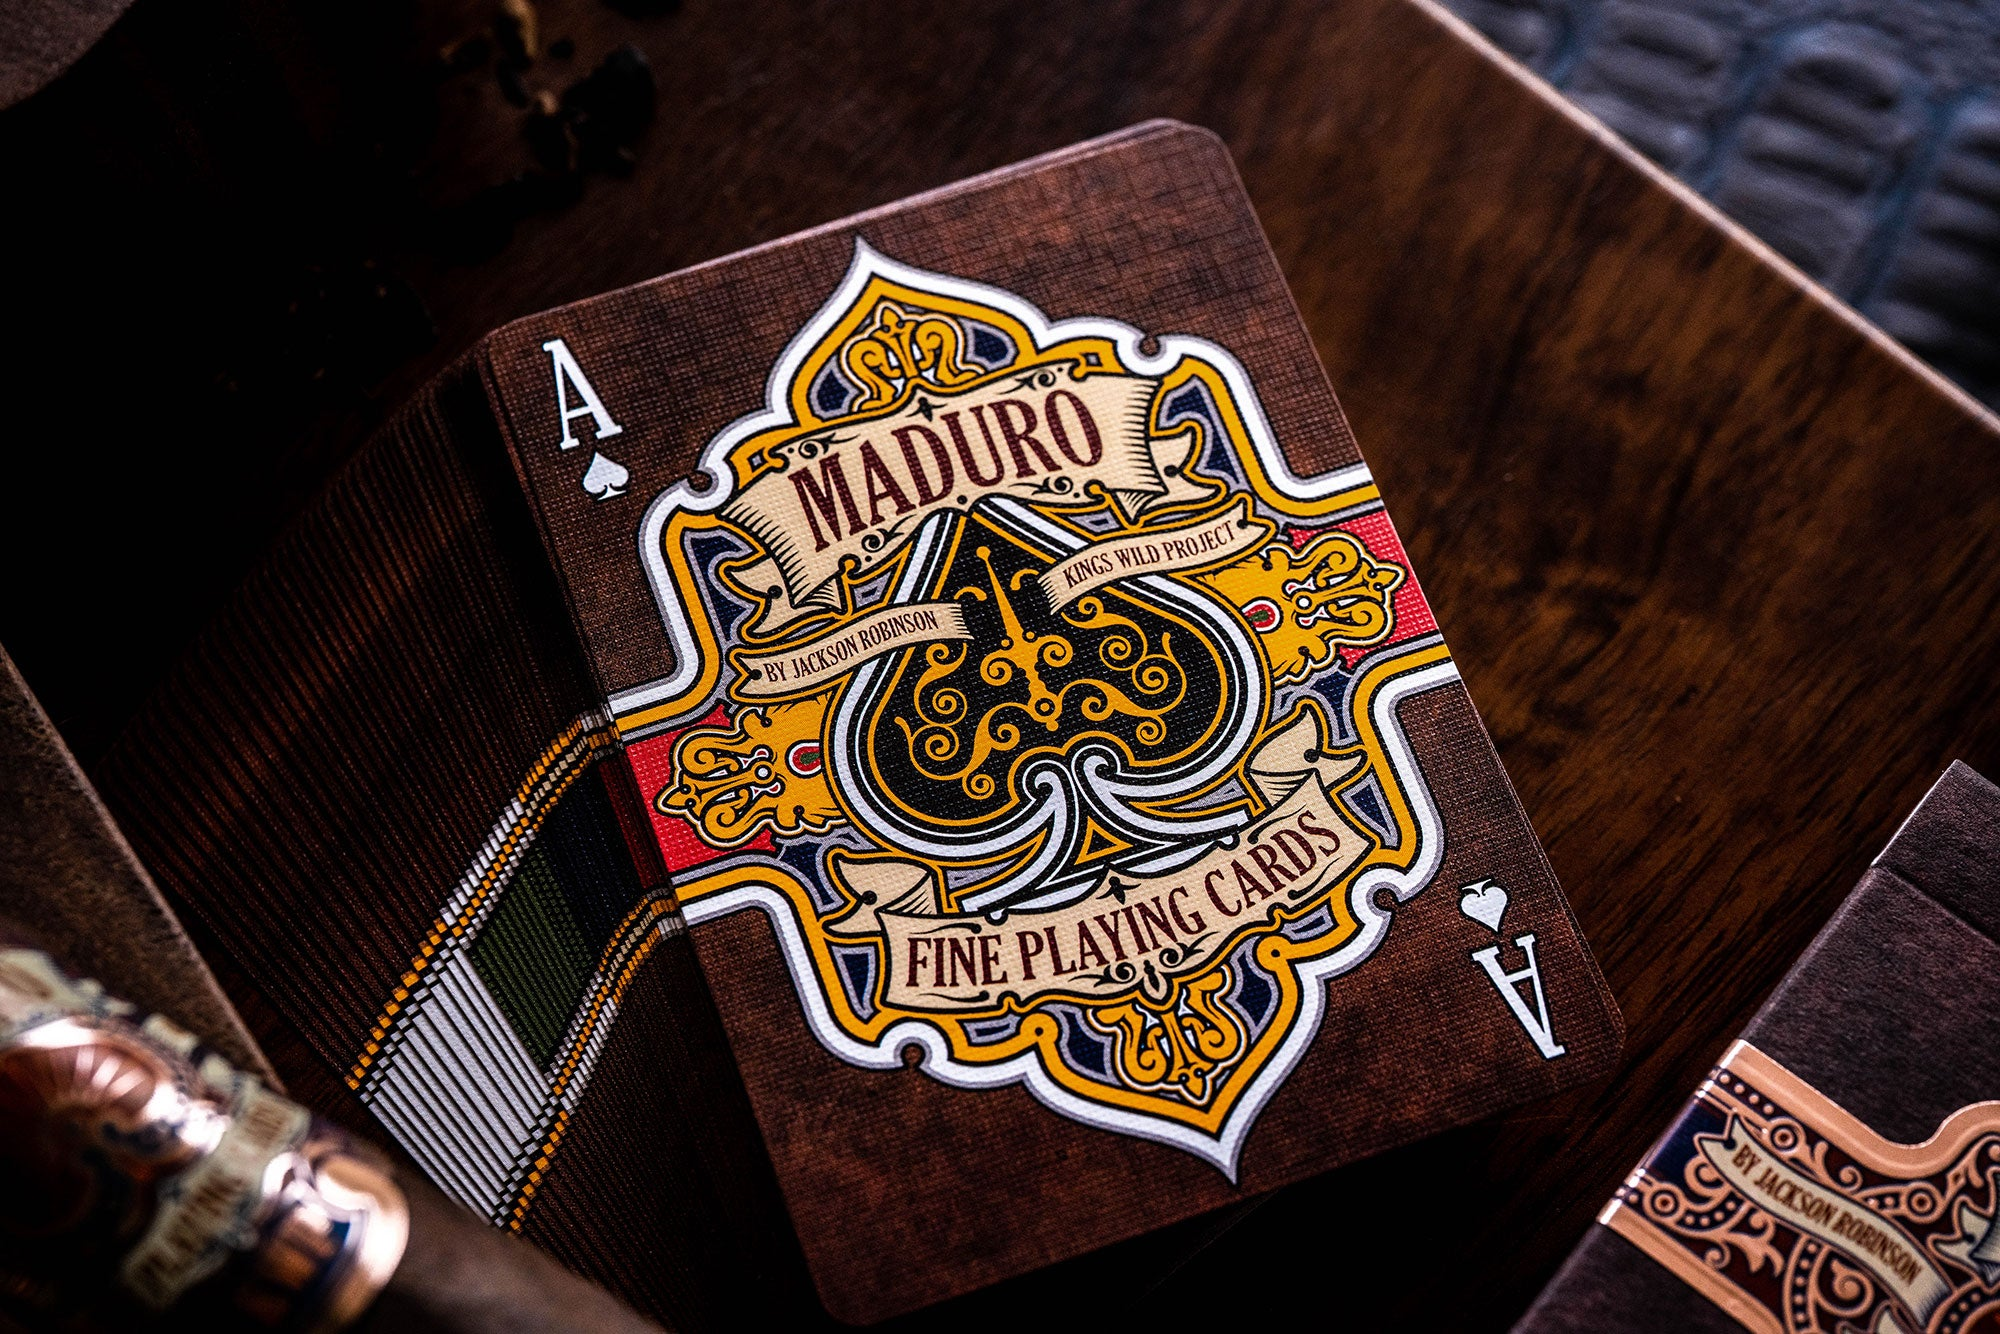 Limited Gold Maduro 2nd Edition